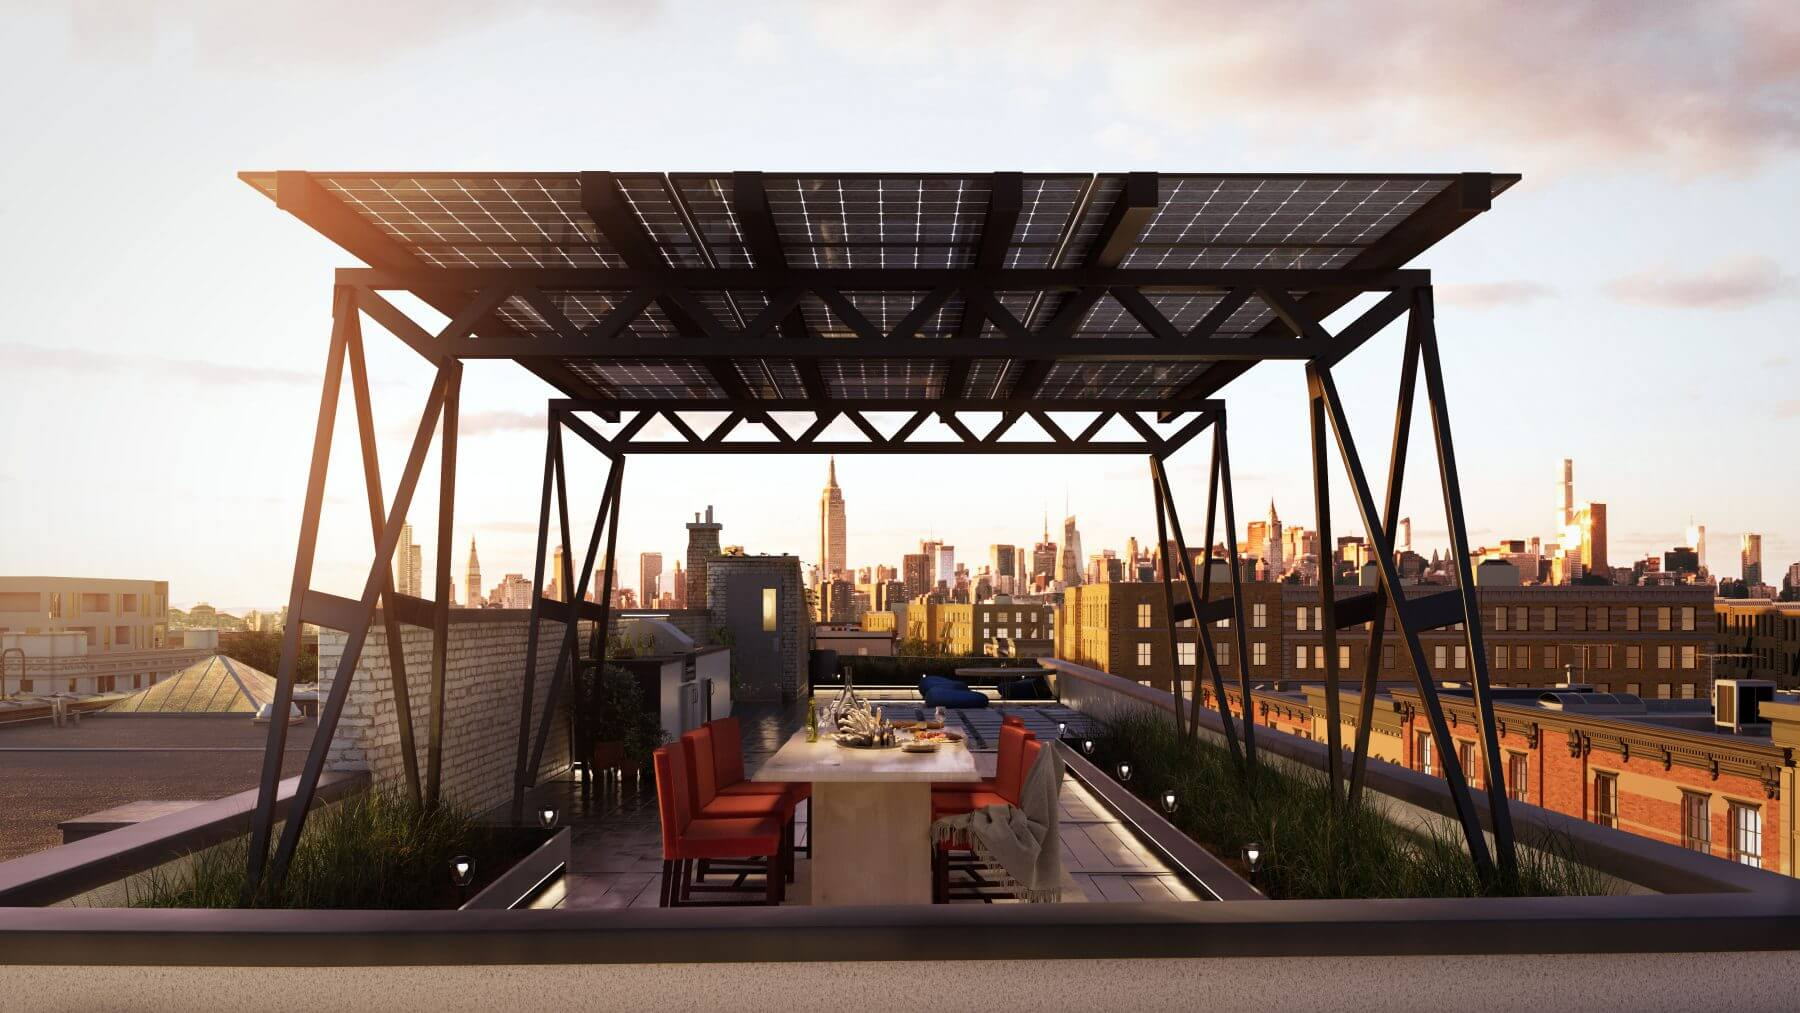 Canopies are an ideal way to shelter and shade rootop decks and amenity spaces.